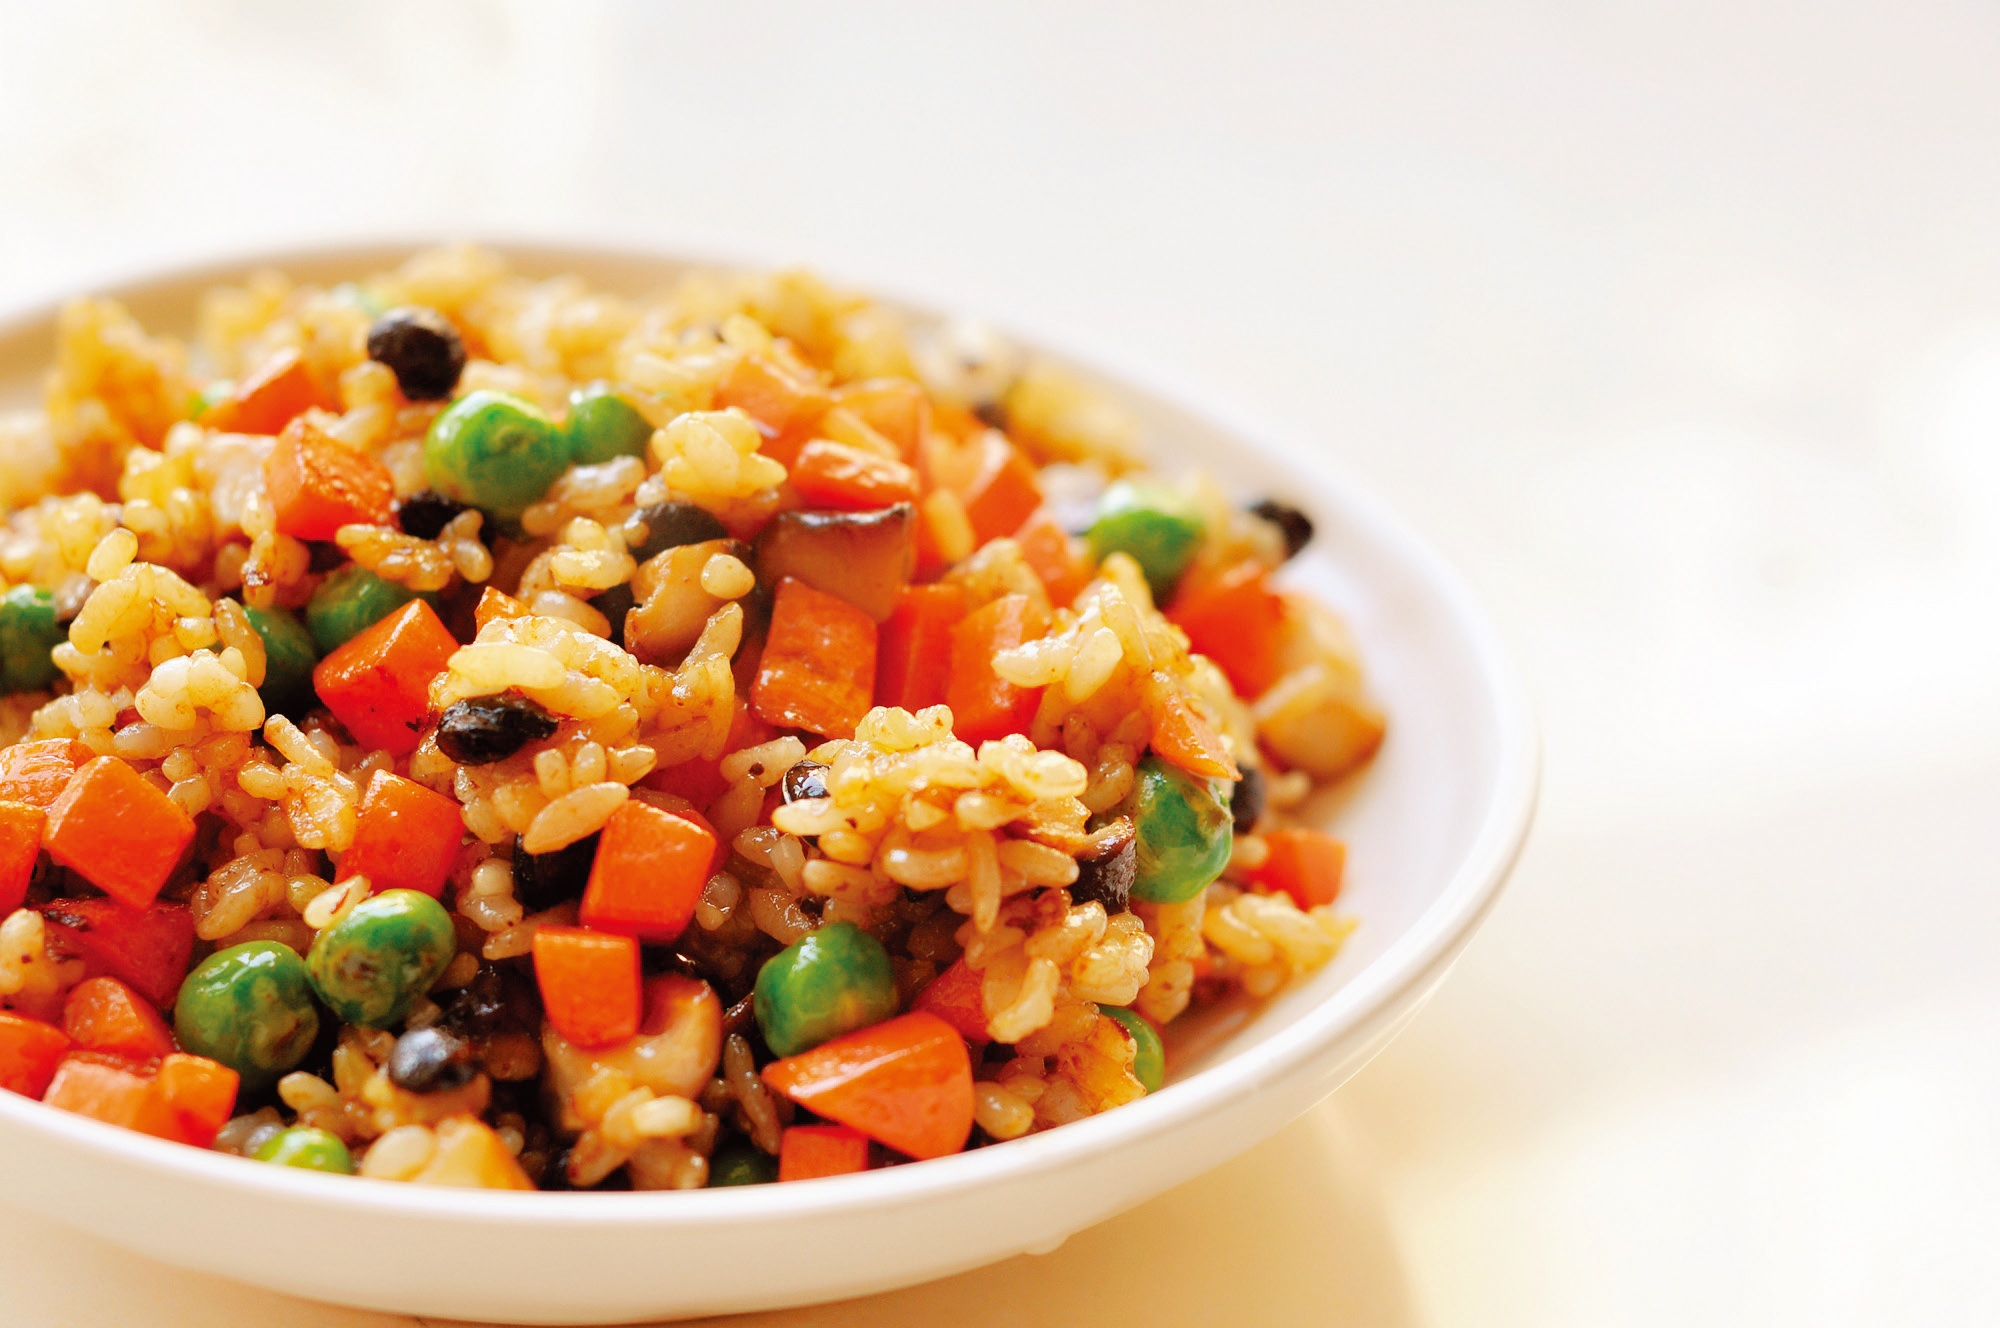 Sichuan hot chili fried rice